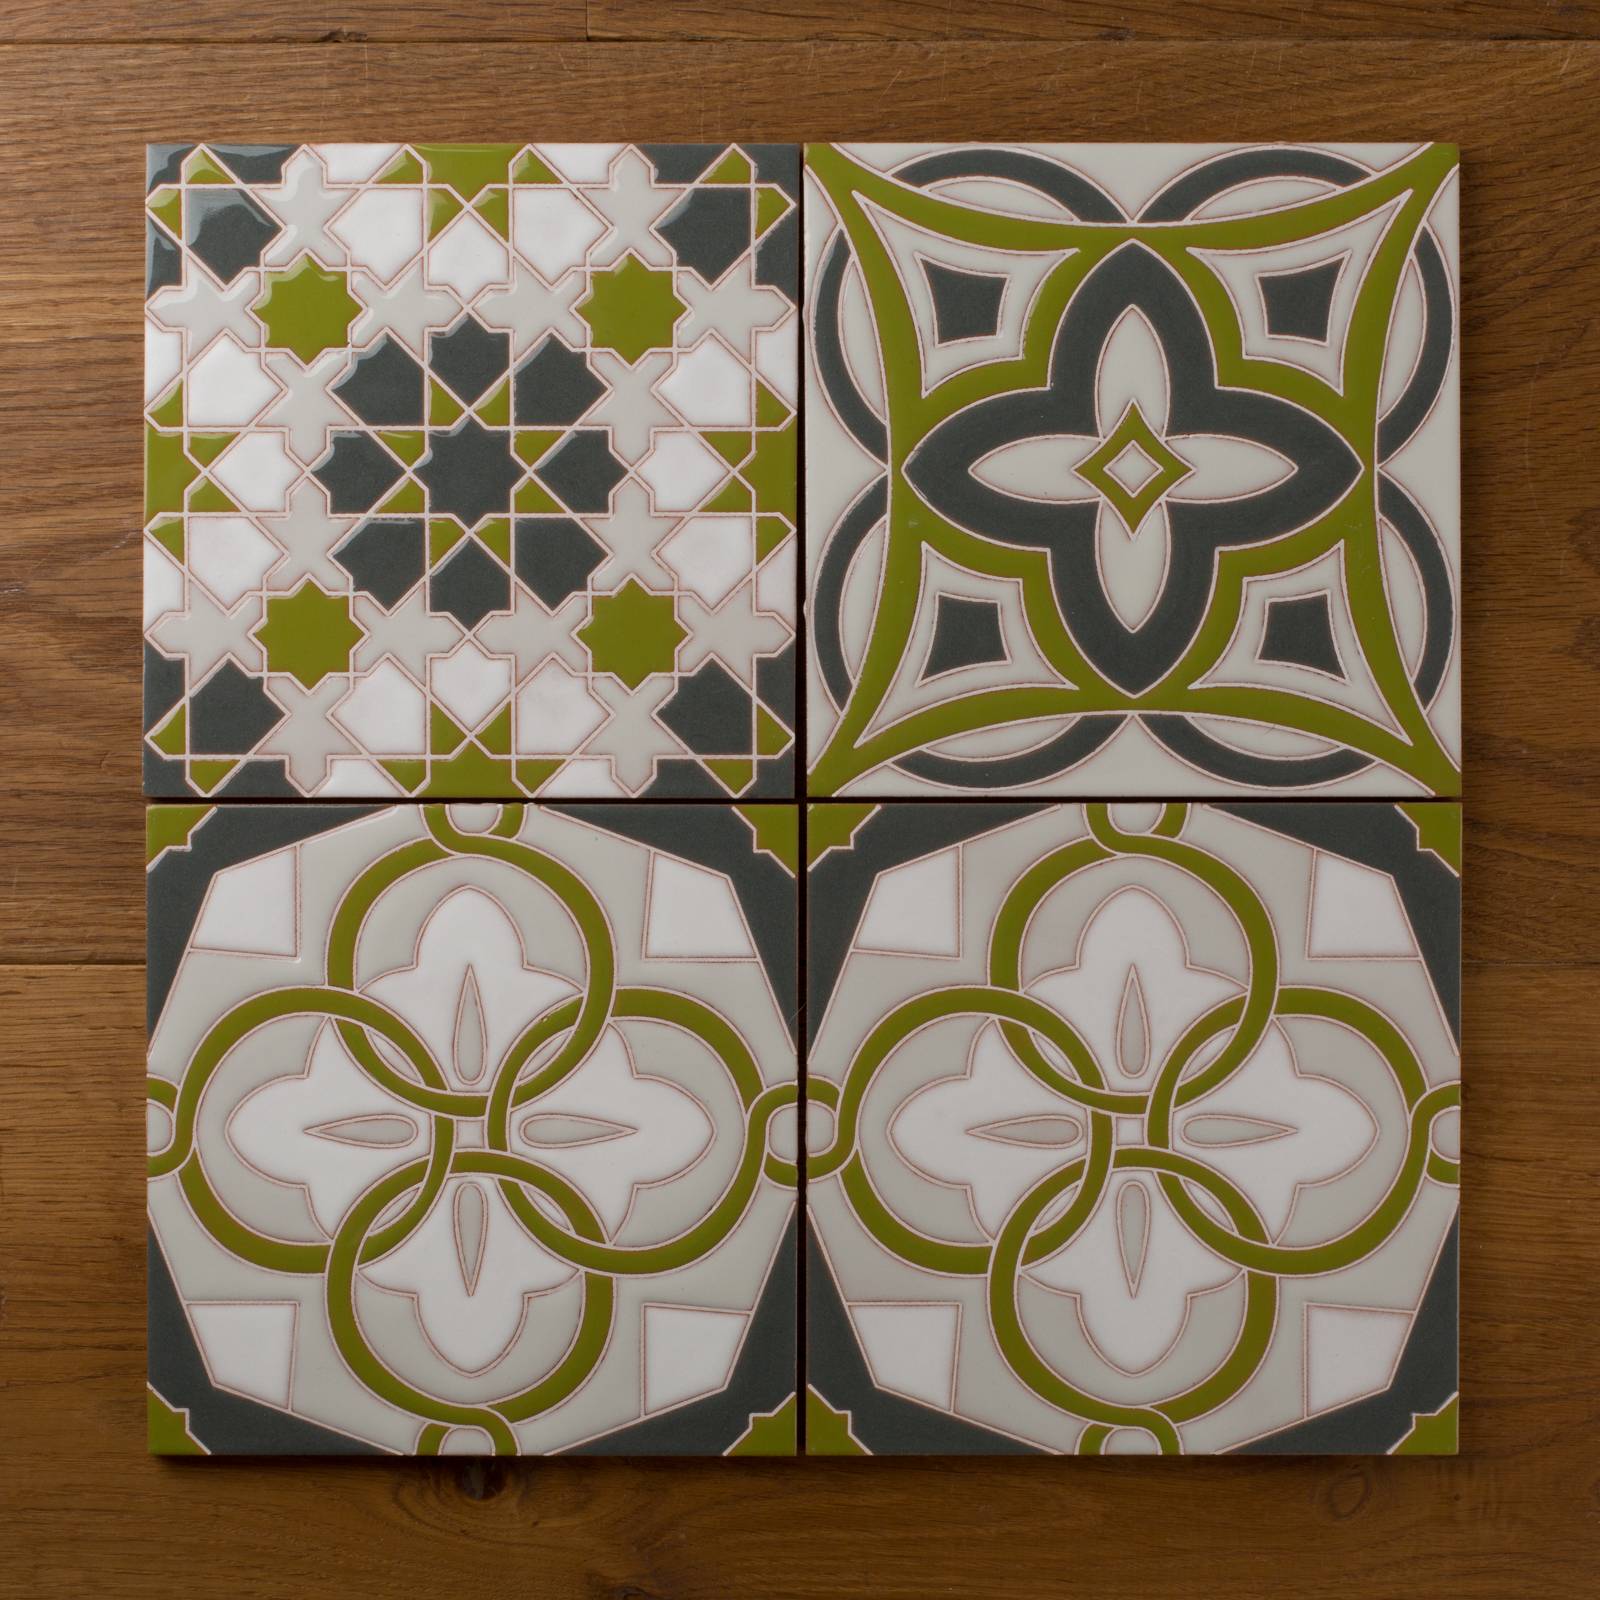 Fireclay Tile Known For Its Range Of Handmade Gl And Ceramic Tiles Has Expanded Online Design Experience To Allow Custom Handpainted